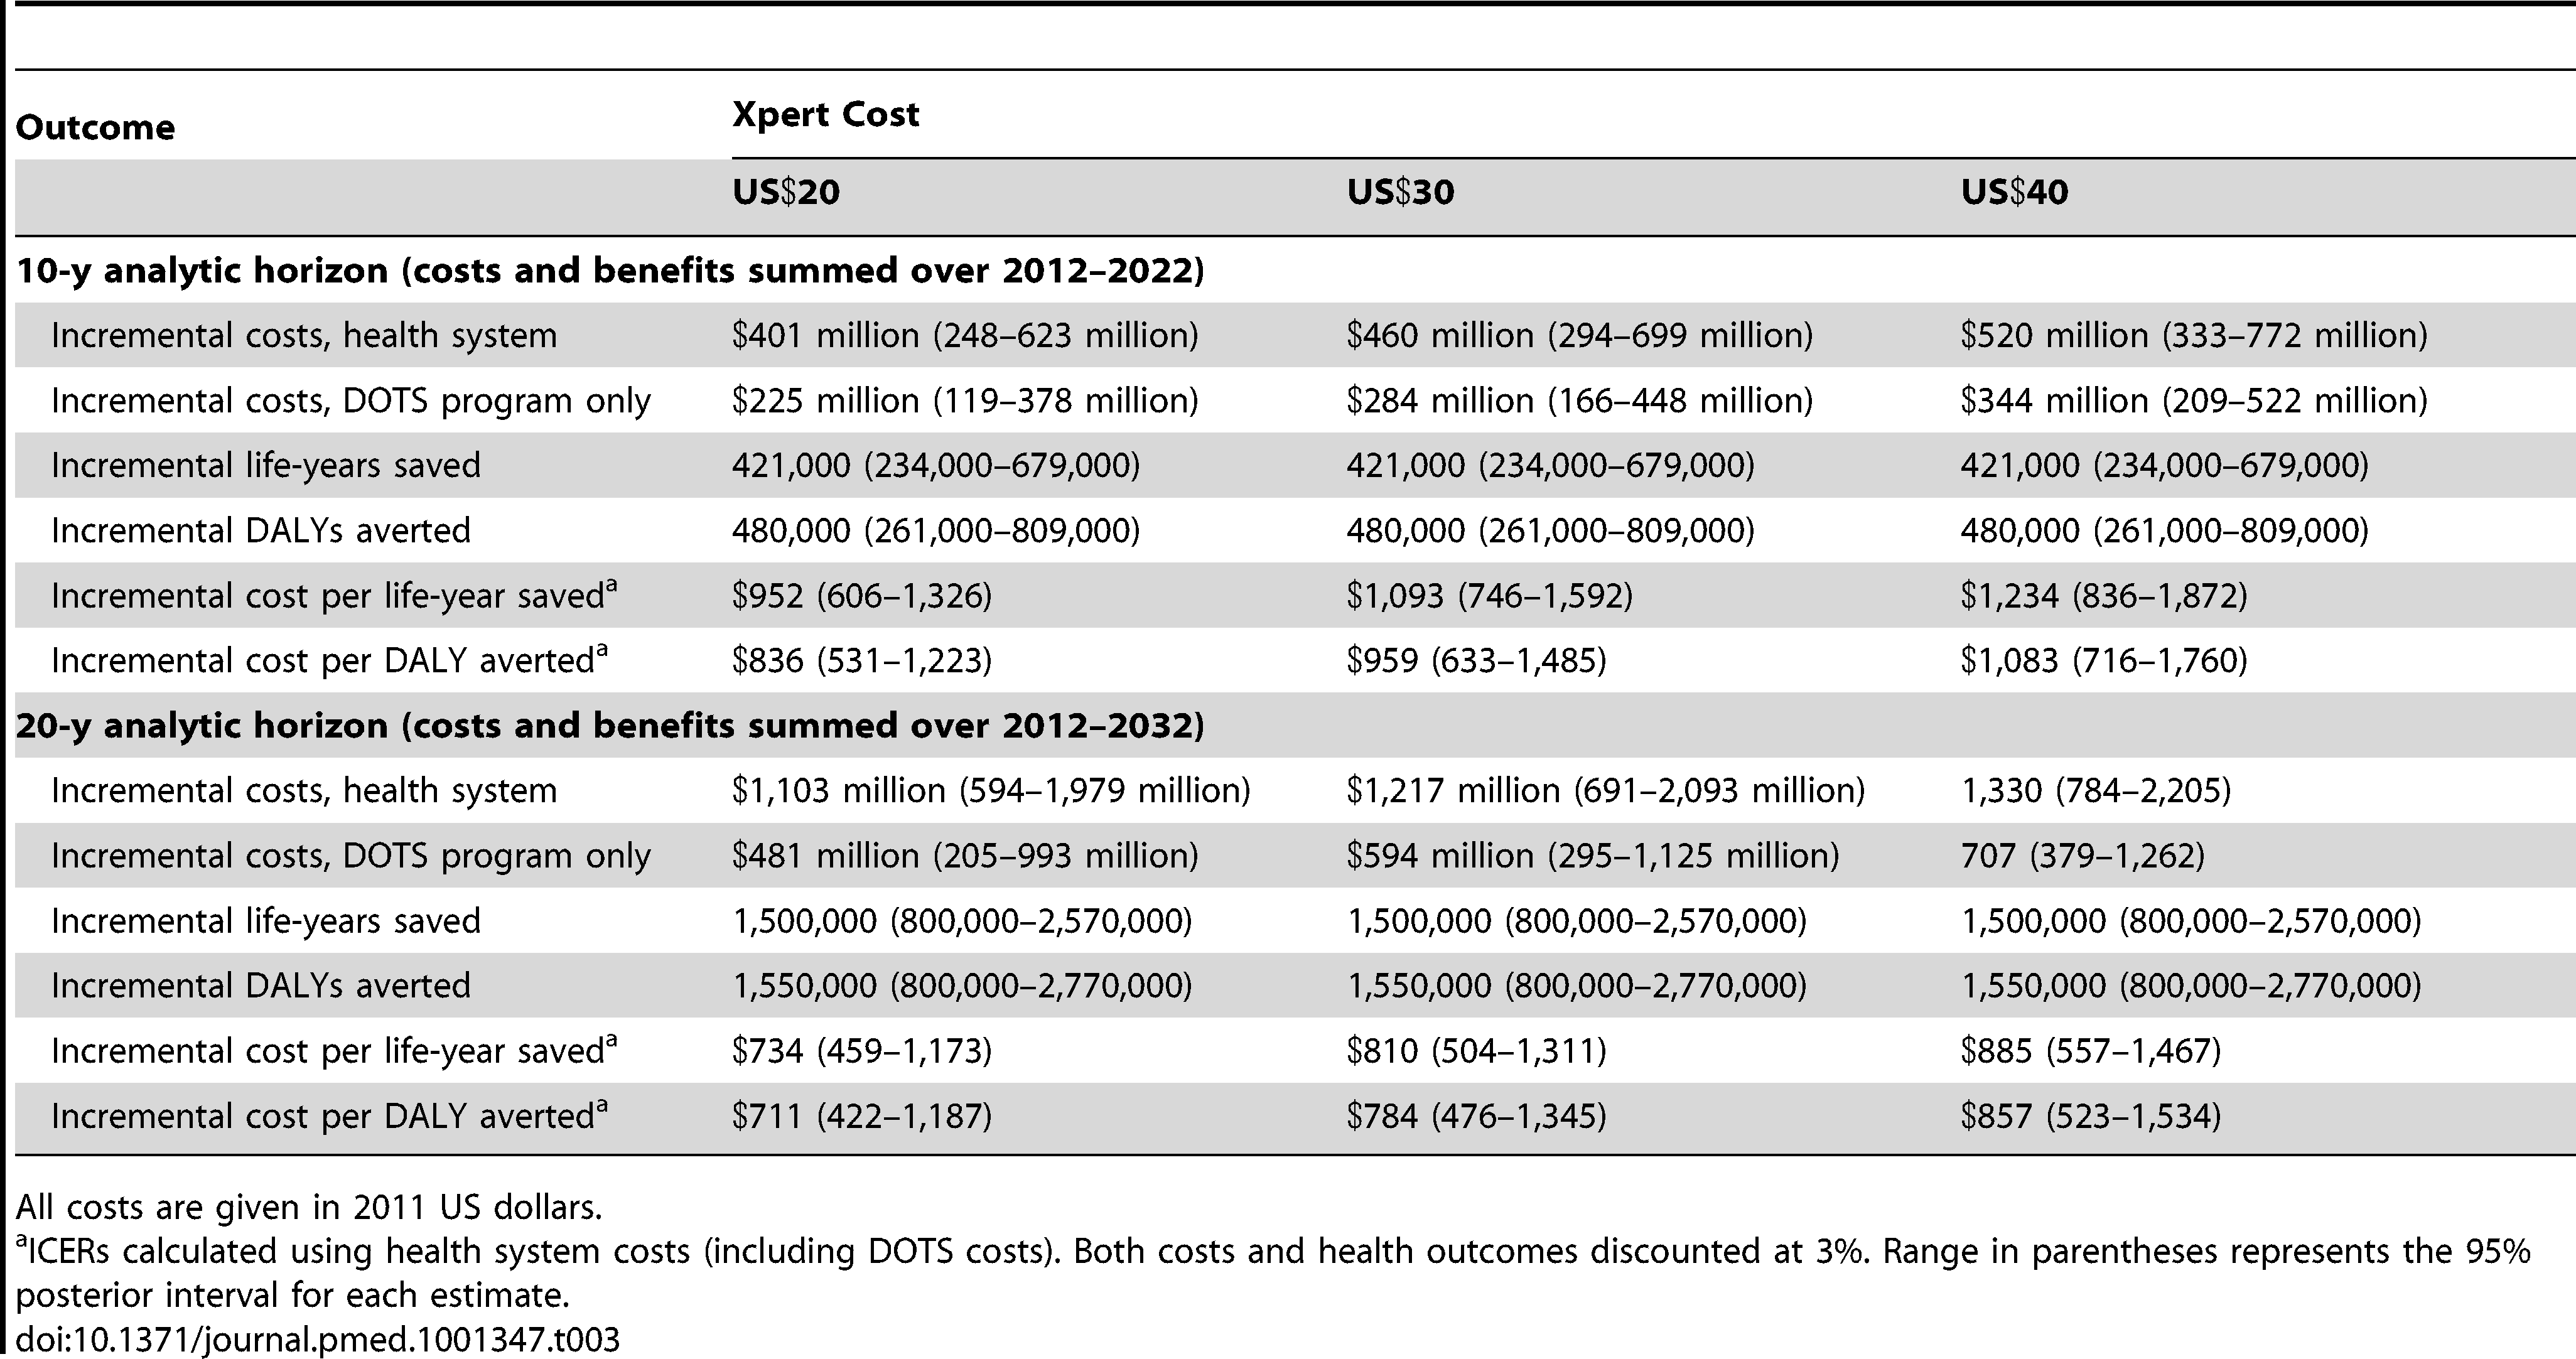 Cost-effectiveness results for Xpert algorithm compared to status quo algorithm in southern Africa.